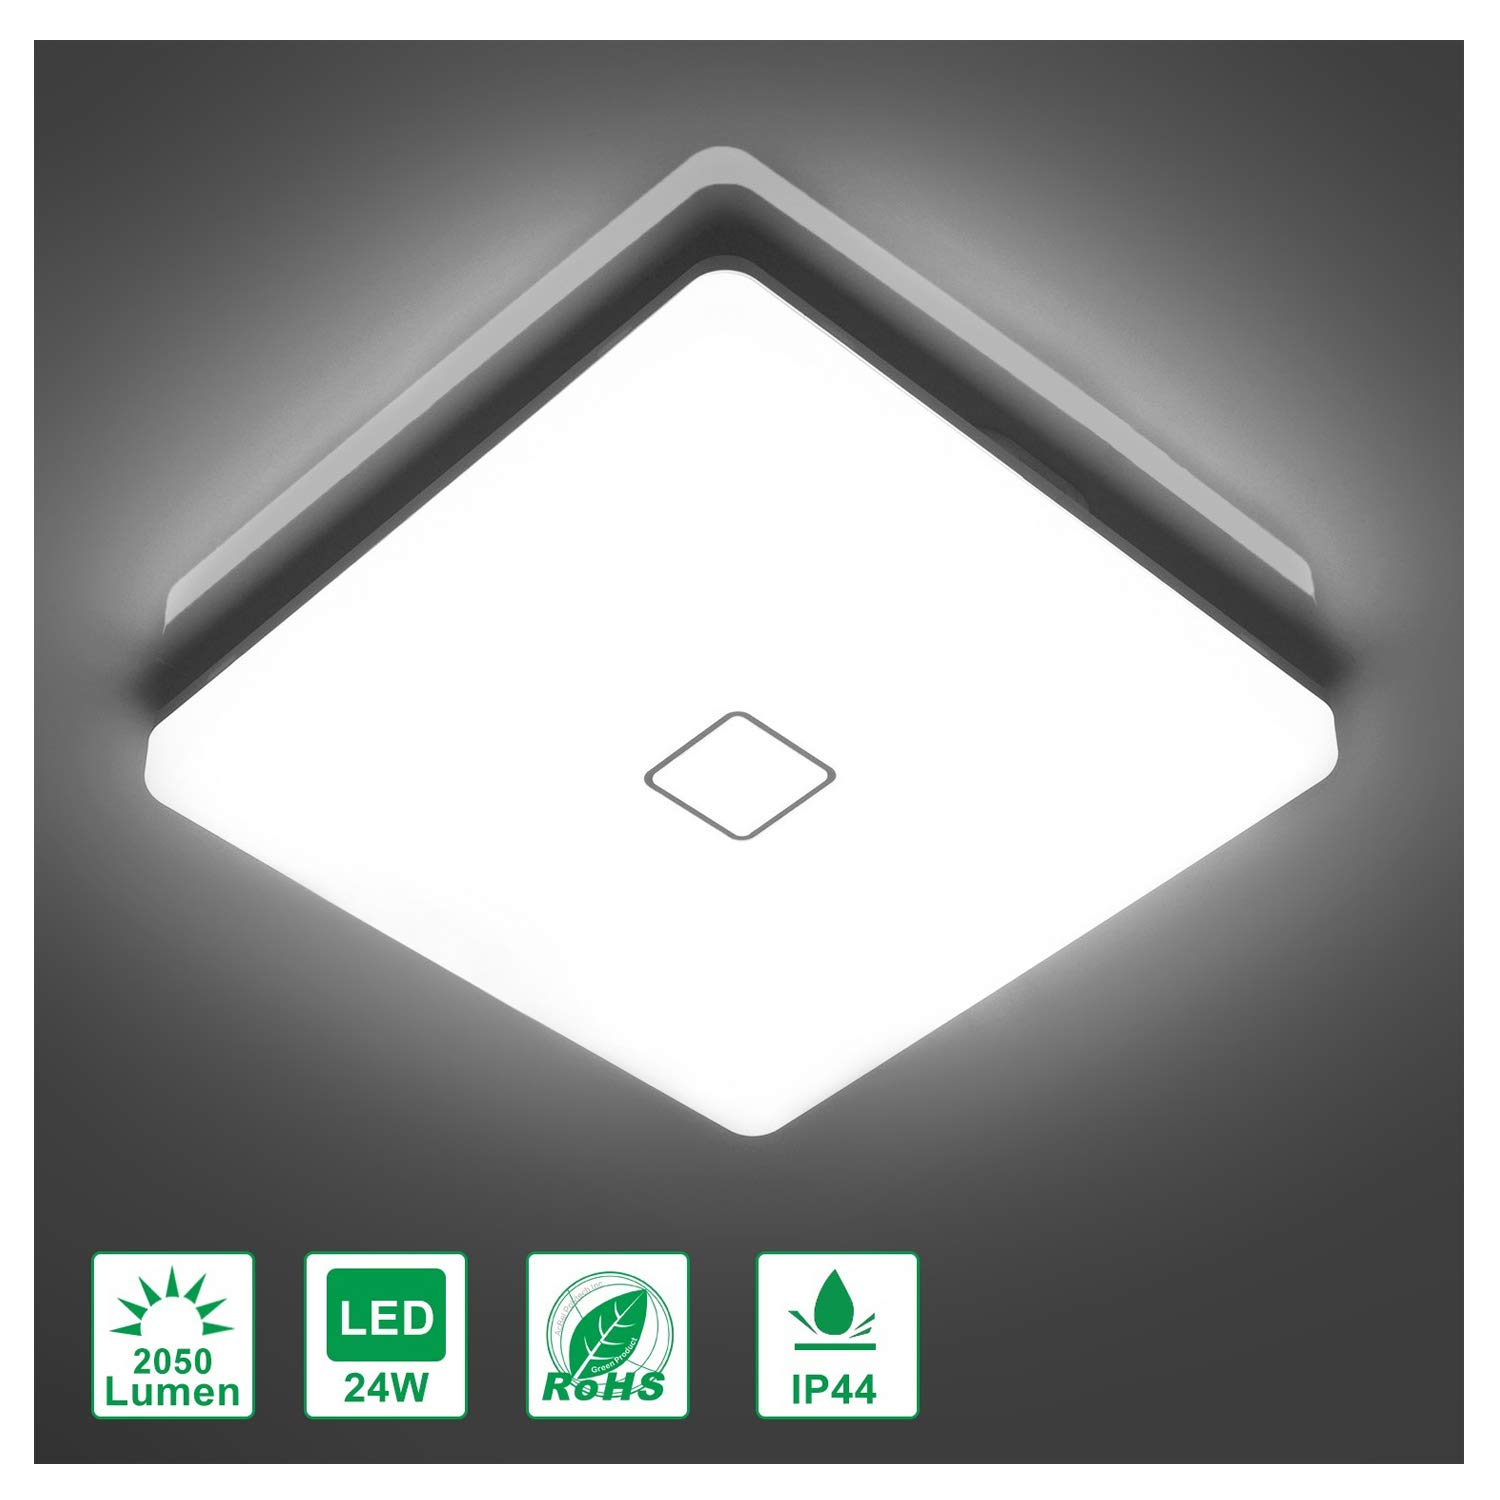 Airand 5000K LED Ceiling Light Flush Mount 24W 12.6 inch Square LED Ceiling Lamp with 240Pcs LED Chips Without Flicker, 2050 Lumens, IP44, 80Ra+, 180W Equivalent (Daylight White)